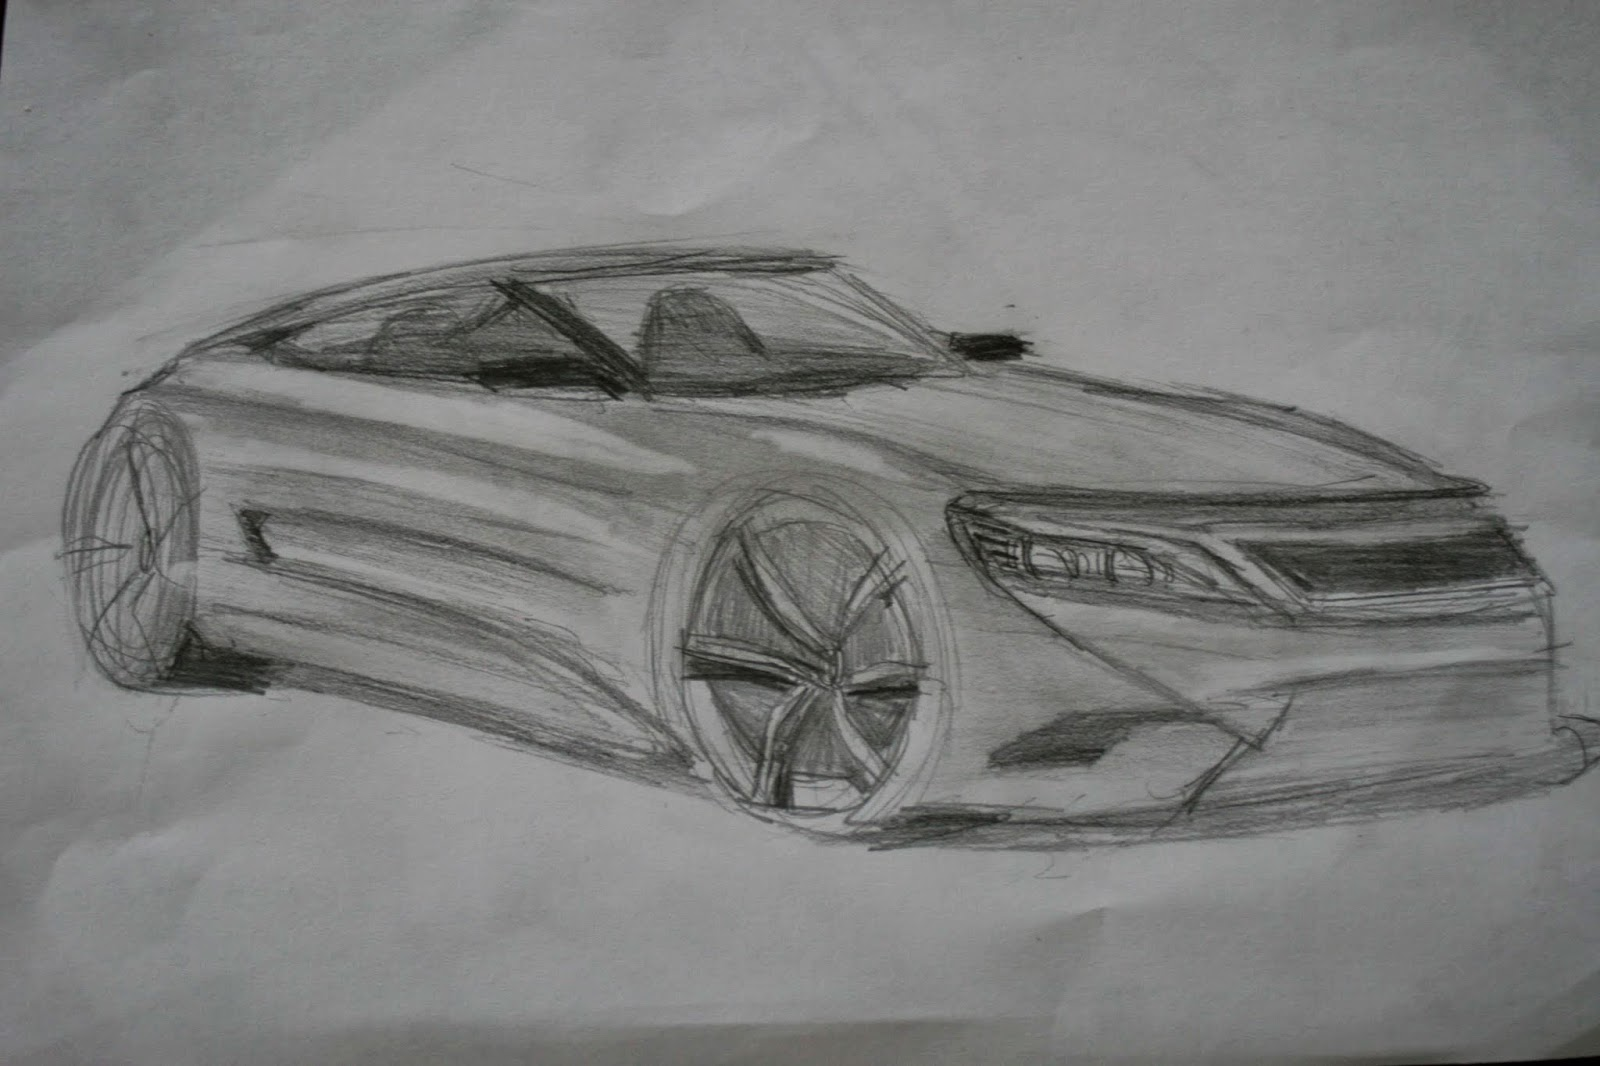 Pencil shading sketch